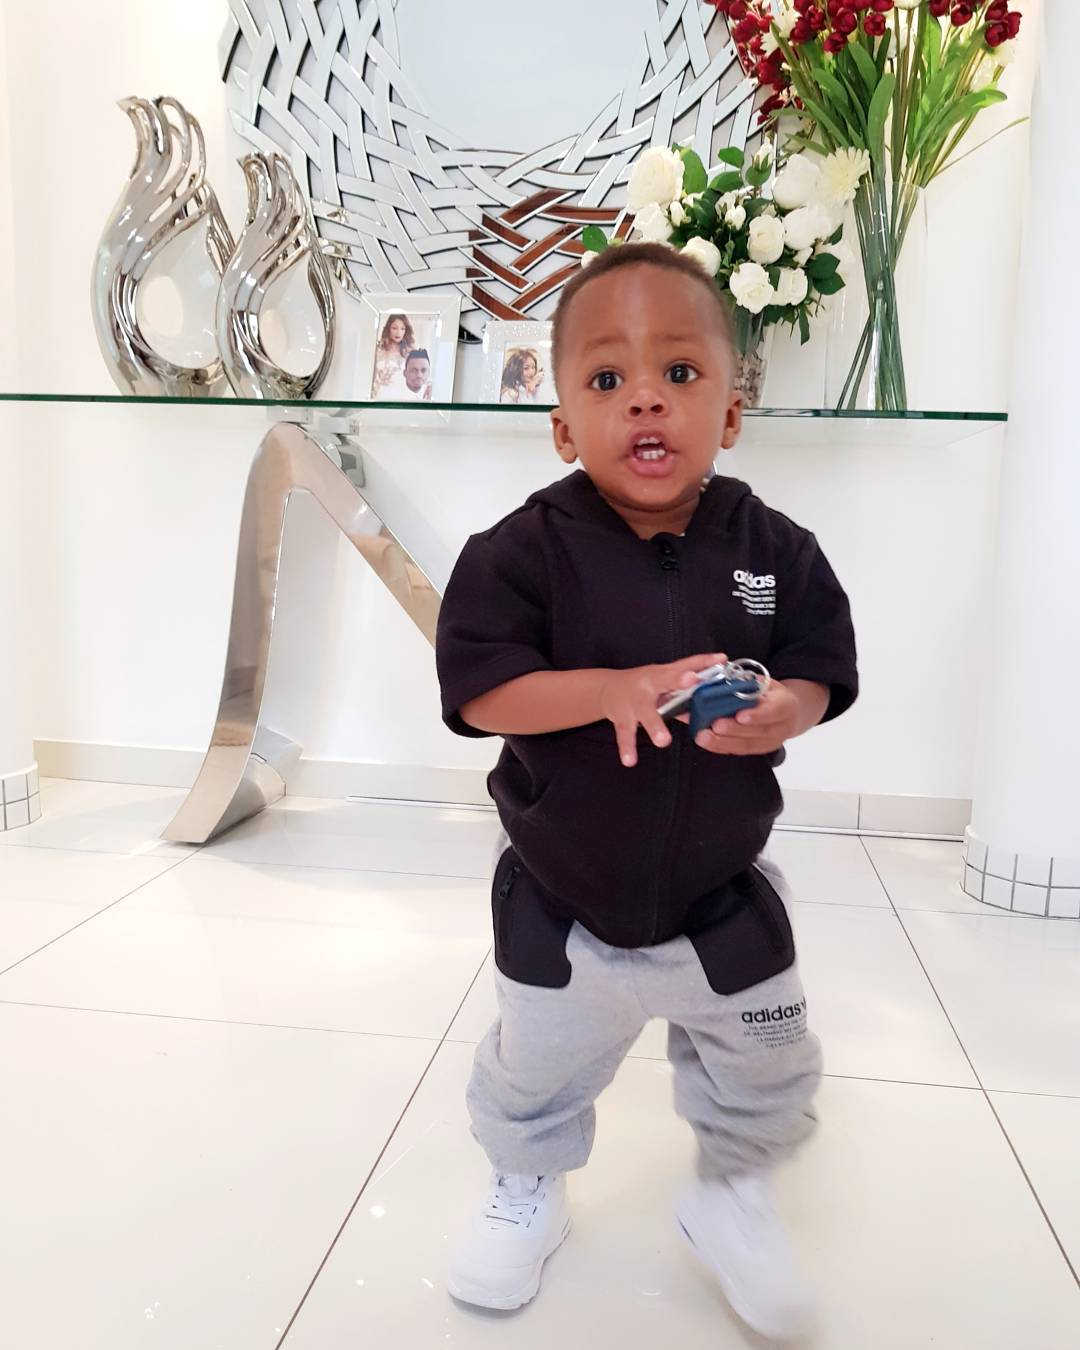 Prince Nillan style3 - Check out Diamond Platnumz' heir, Prince Nillan flaunting his cars